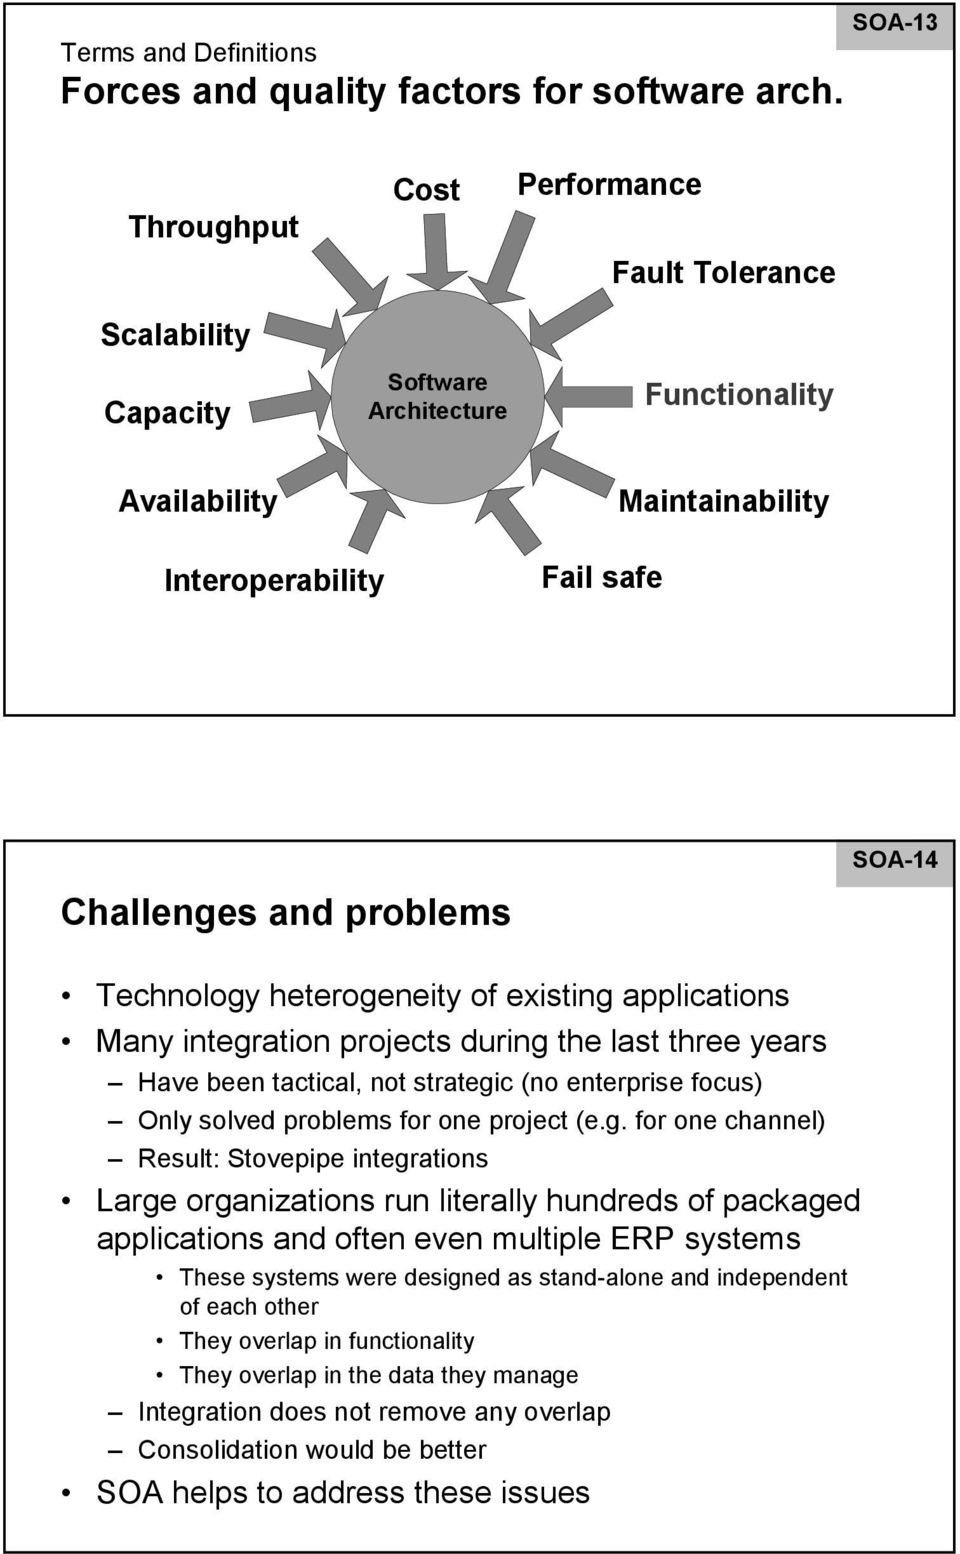 SOA-14 Technology heterogeneity of existing applications Many integration projects during the last three years Have been tactical, not strategic (no enterprise focus) Only solved problems for one